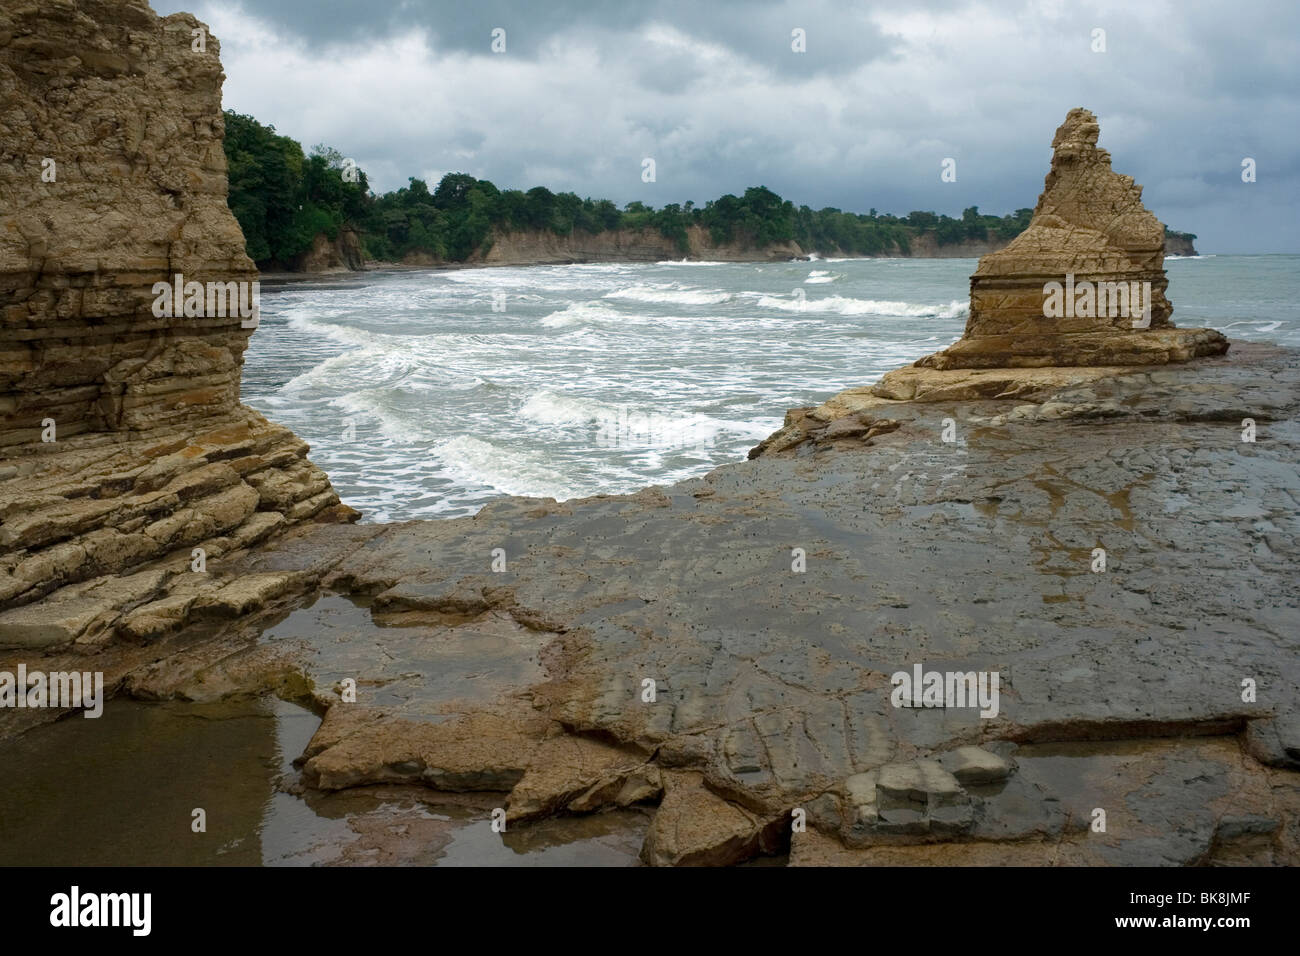 Eroded shale cliffs on the Pacific coast of Ecuador - Stock Image